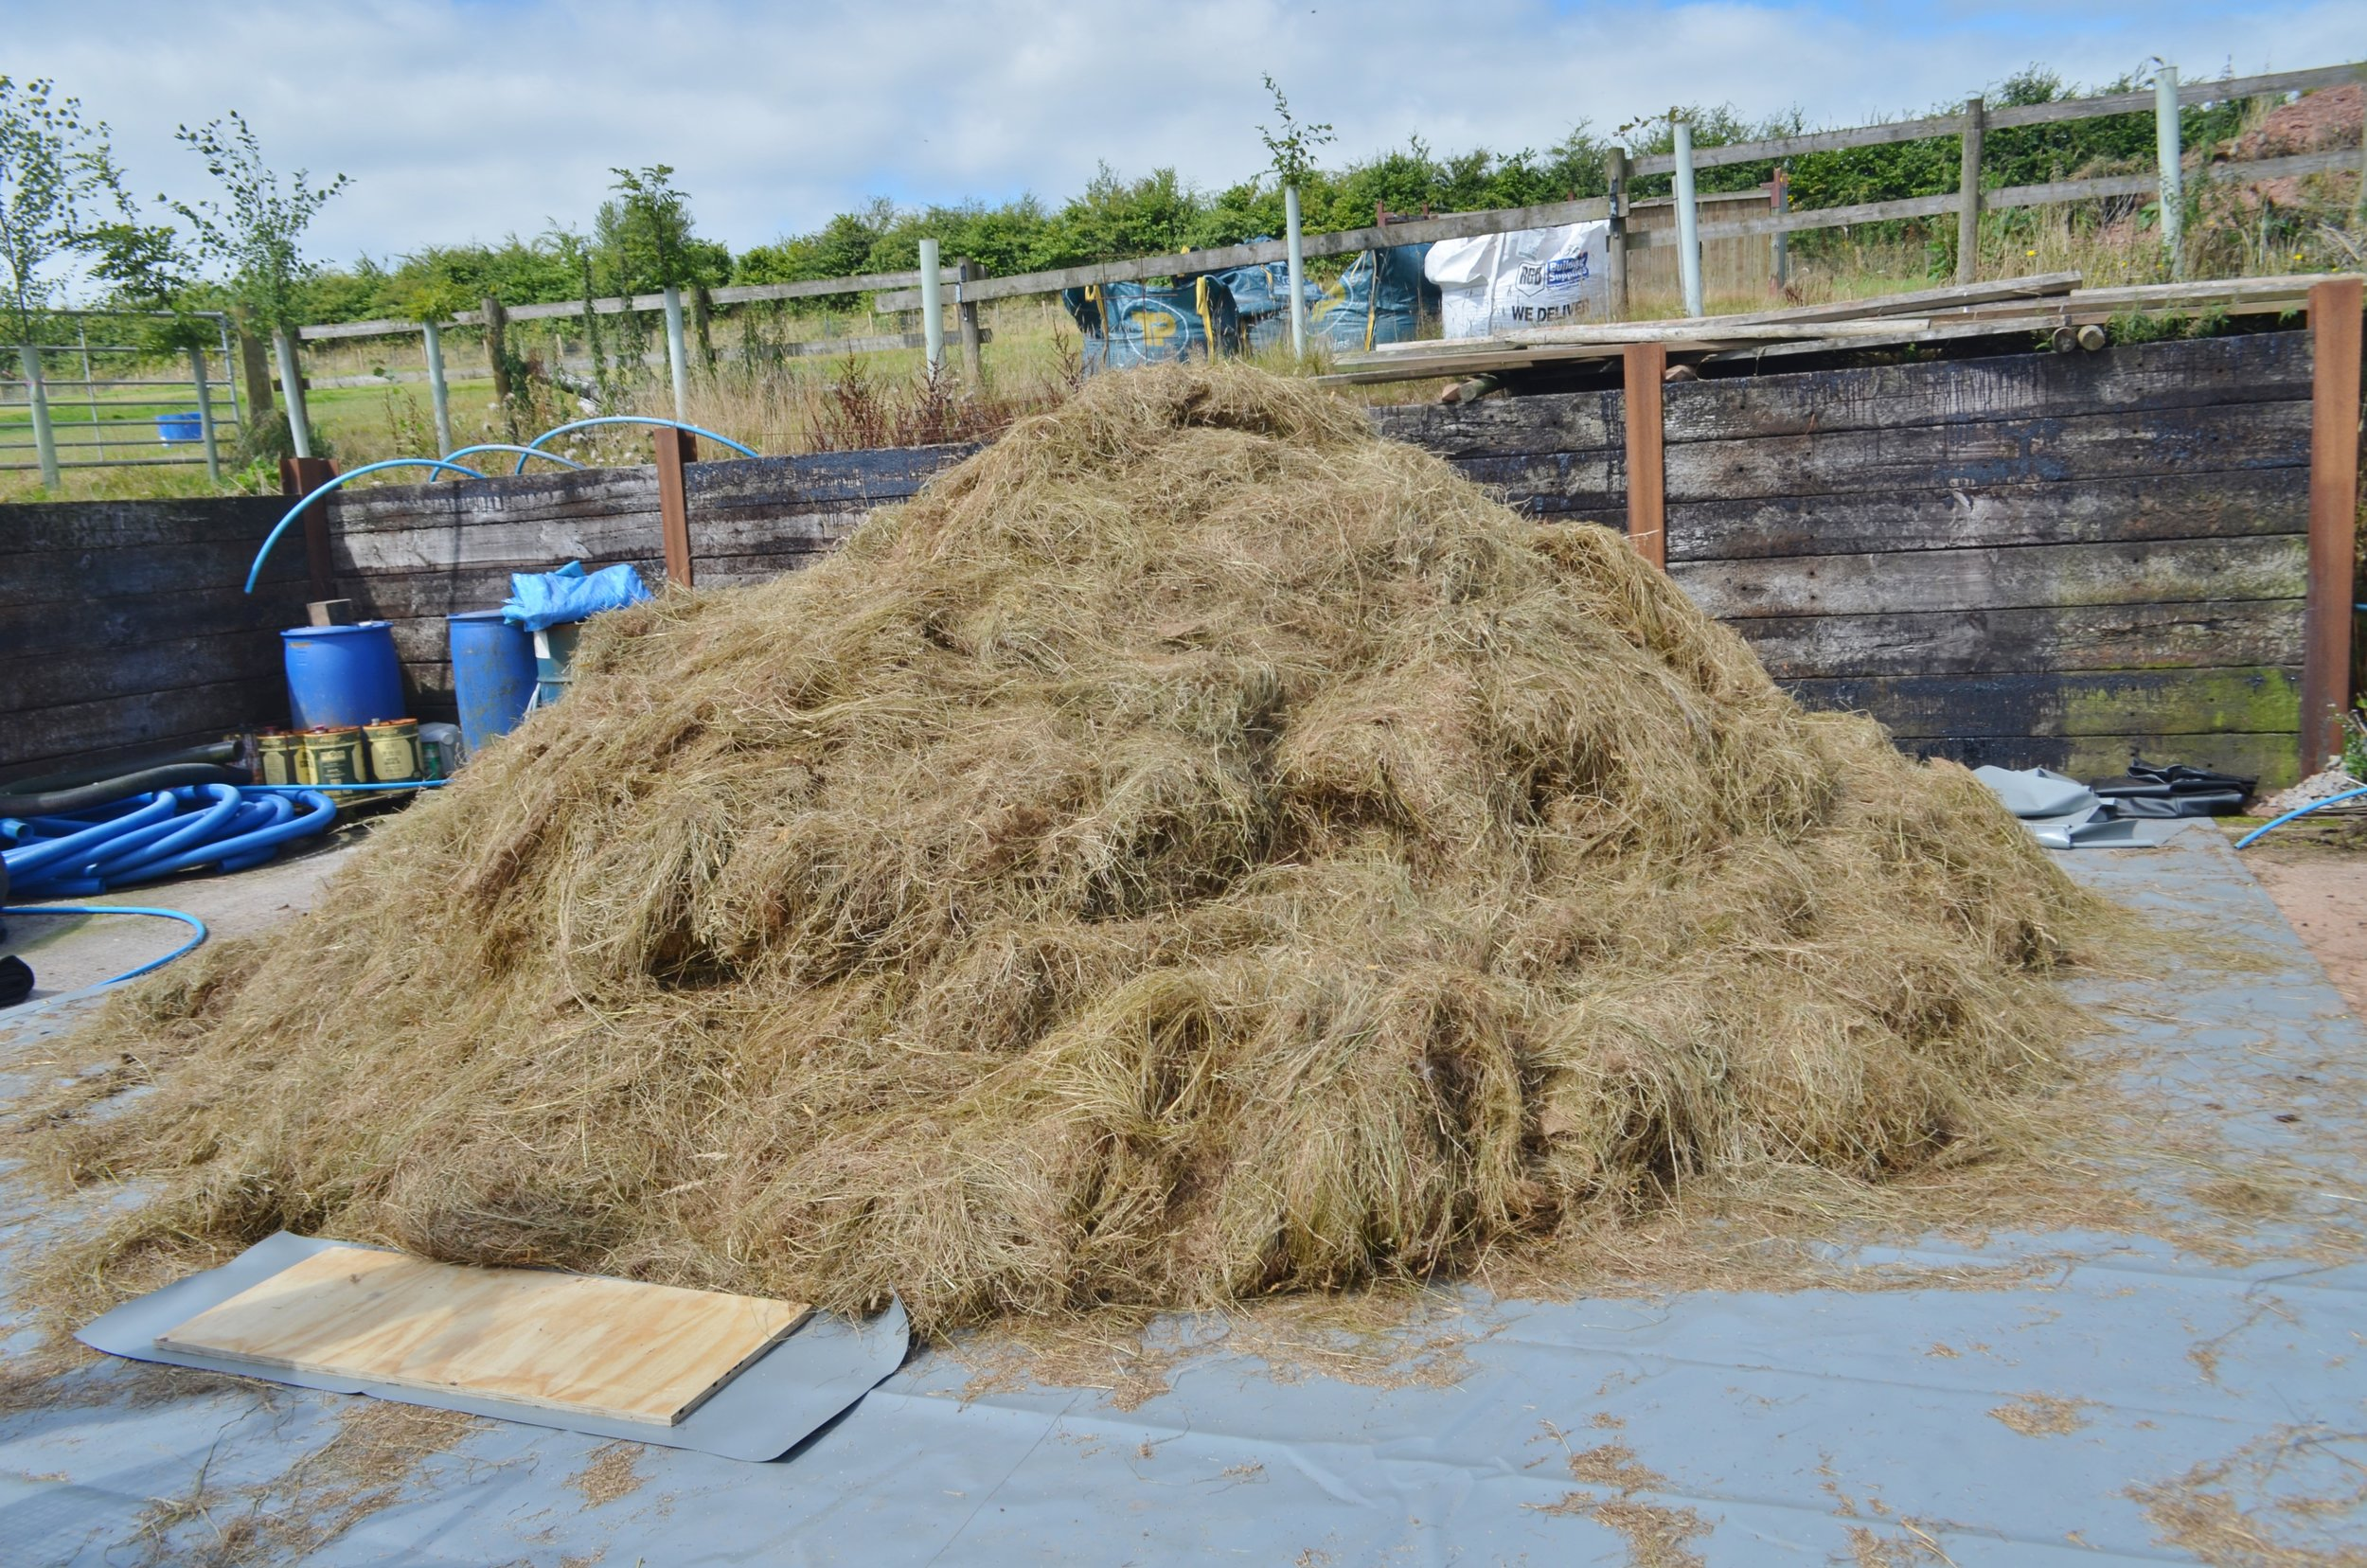 Copy of Pilot feedstock of wheat straw and horse manure